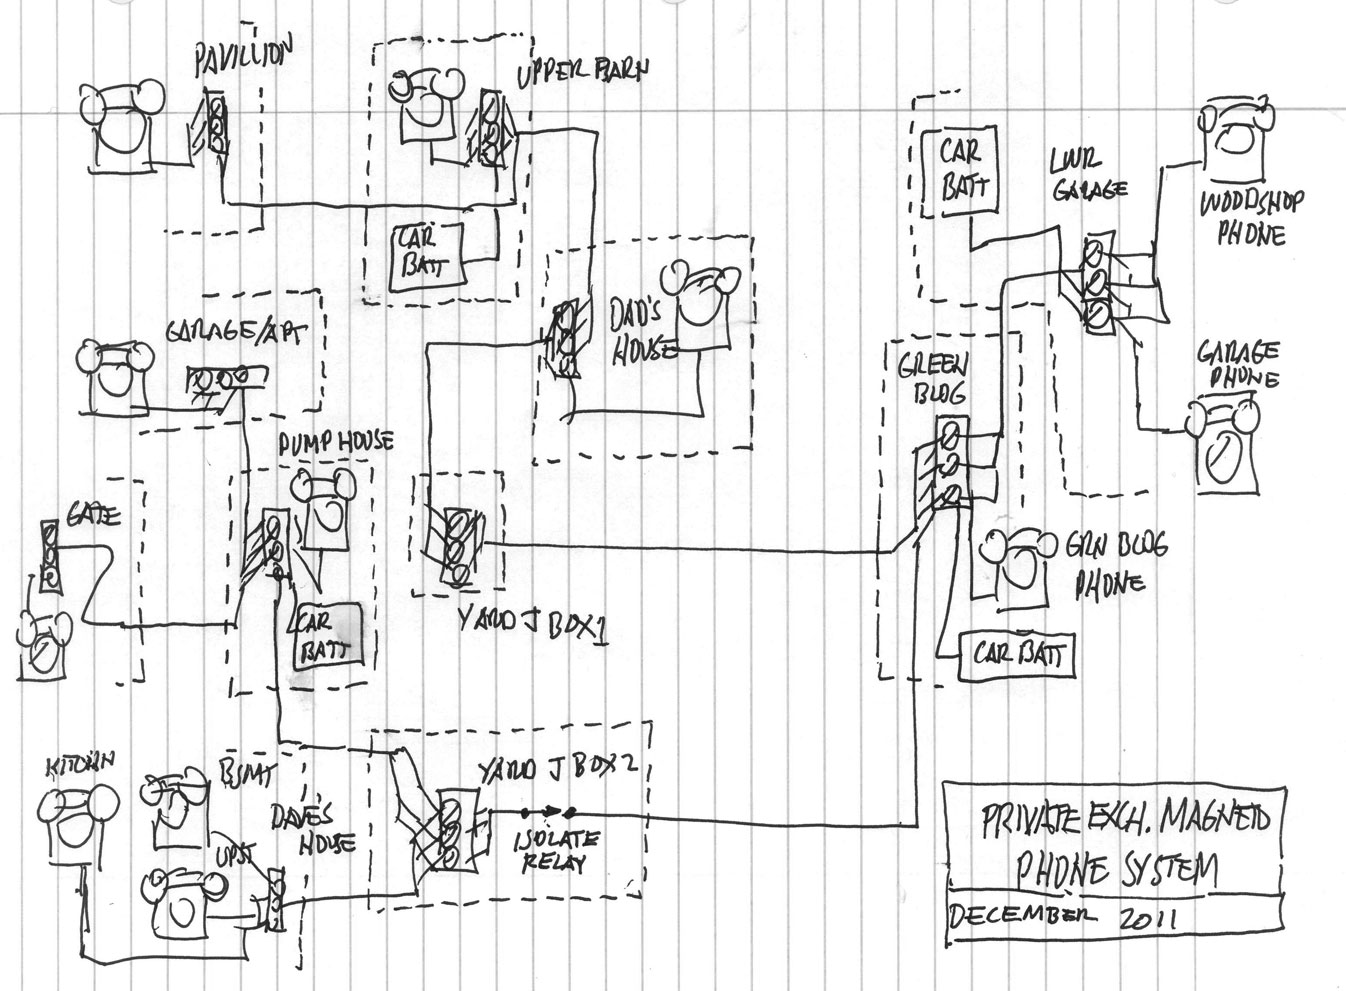 phonesysdiag leich phone magneto phone wiring diagram at crackthecode.co